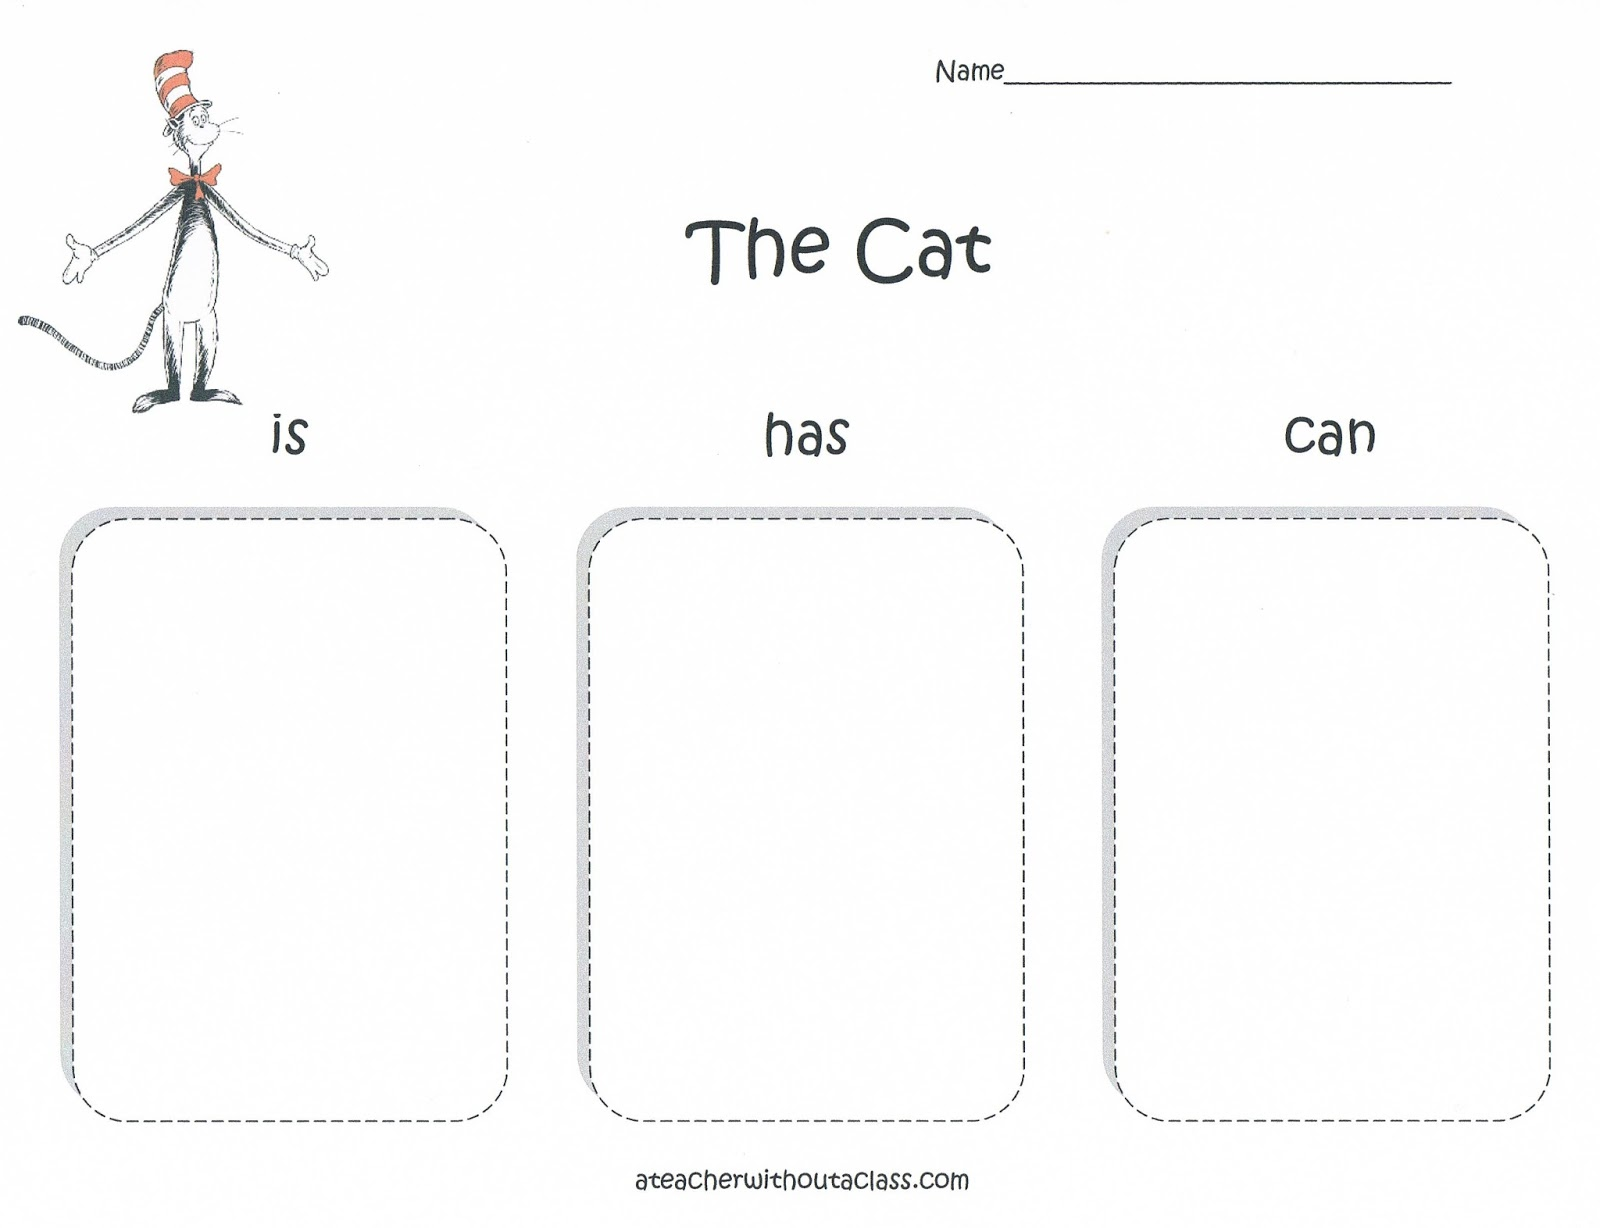 Worksheet Cat In The Hat Worksheets Grass Fedjp Worksheet Study Site